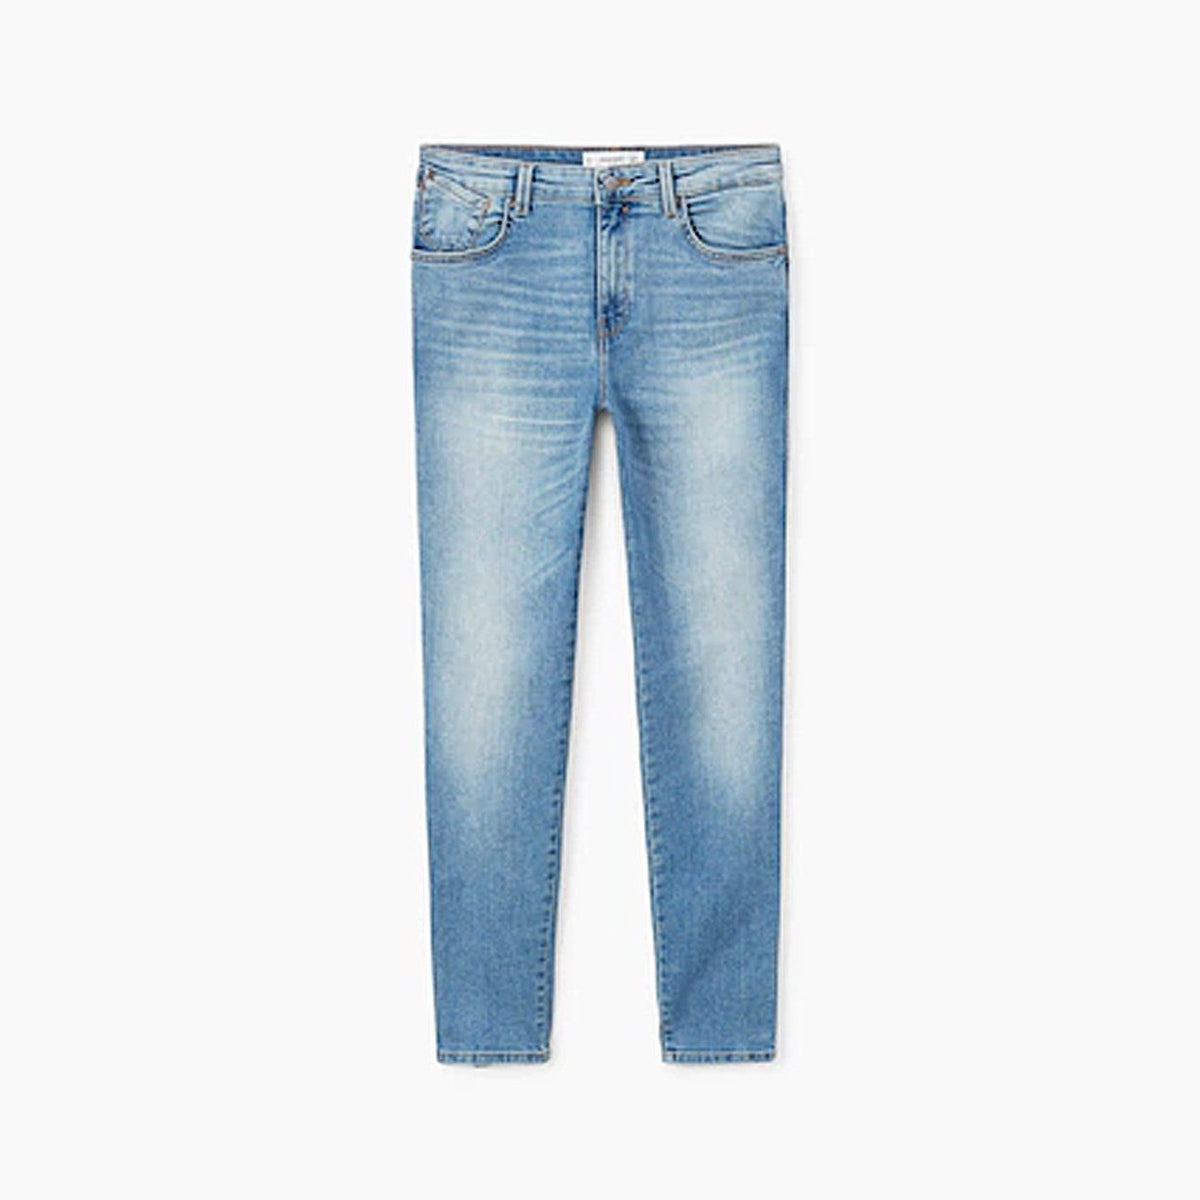 Light blue push-up uptwon jeans